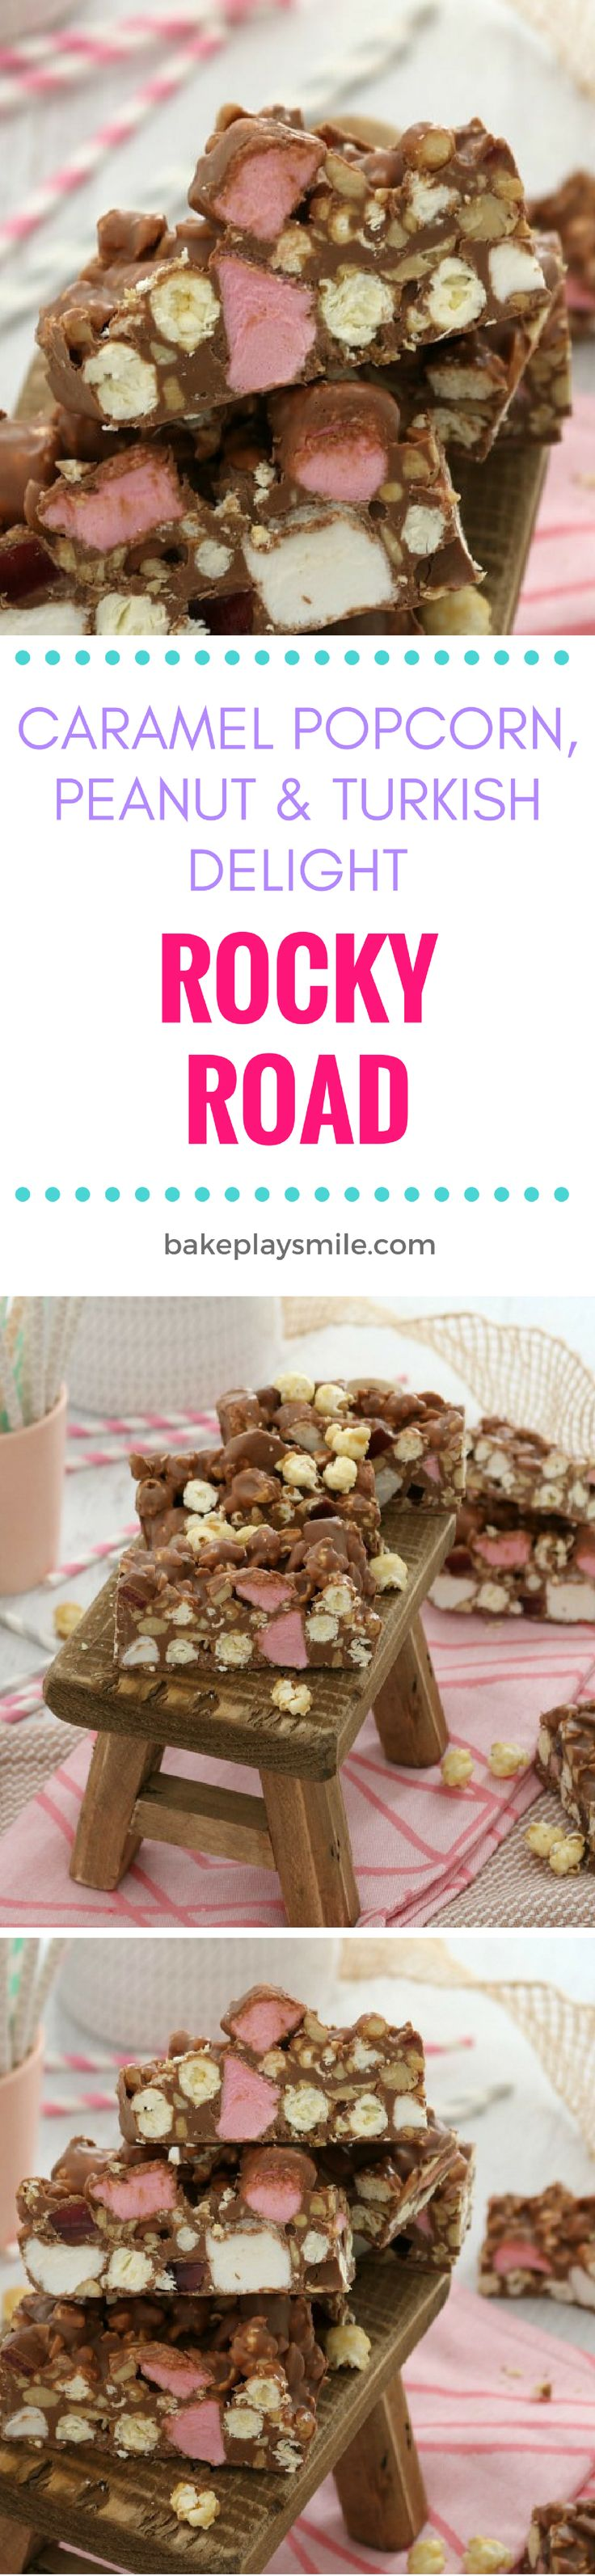 The most deliciously over-the-top Caramel Popcorn, Peanut & Turkish Delight Rocky Road ever!!! This is one for the total chocoholics out there!  #rockyroad #rocky #road #chocolate #caramel #popcorn #peanut #turkish #delight #recipe #easy #best #nobake #thermomix #conventional #kids